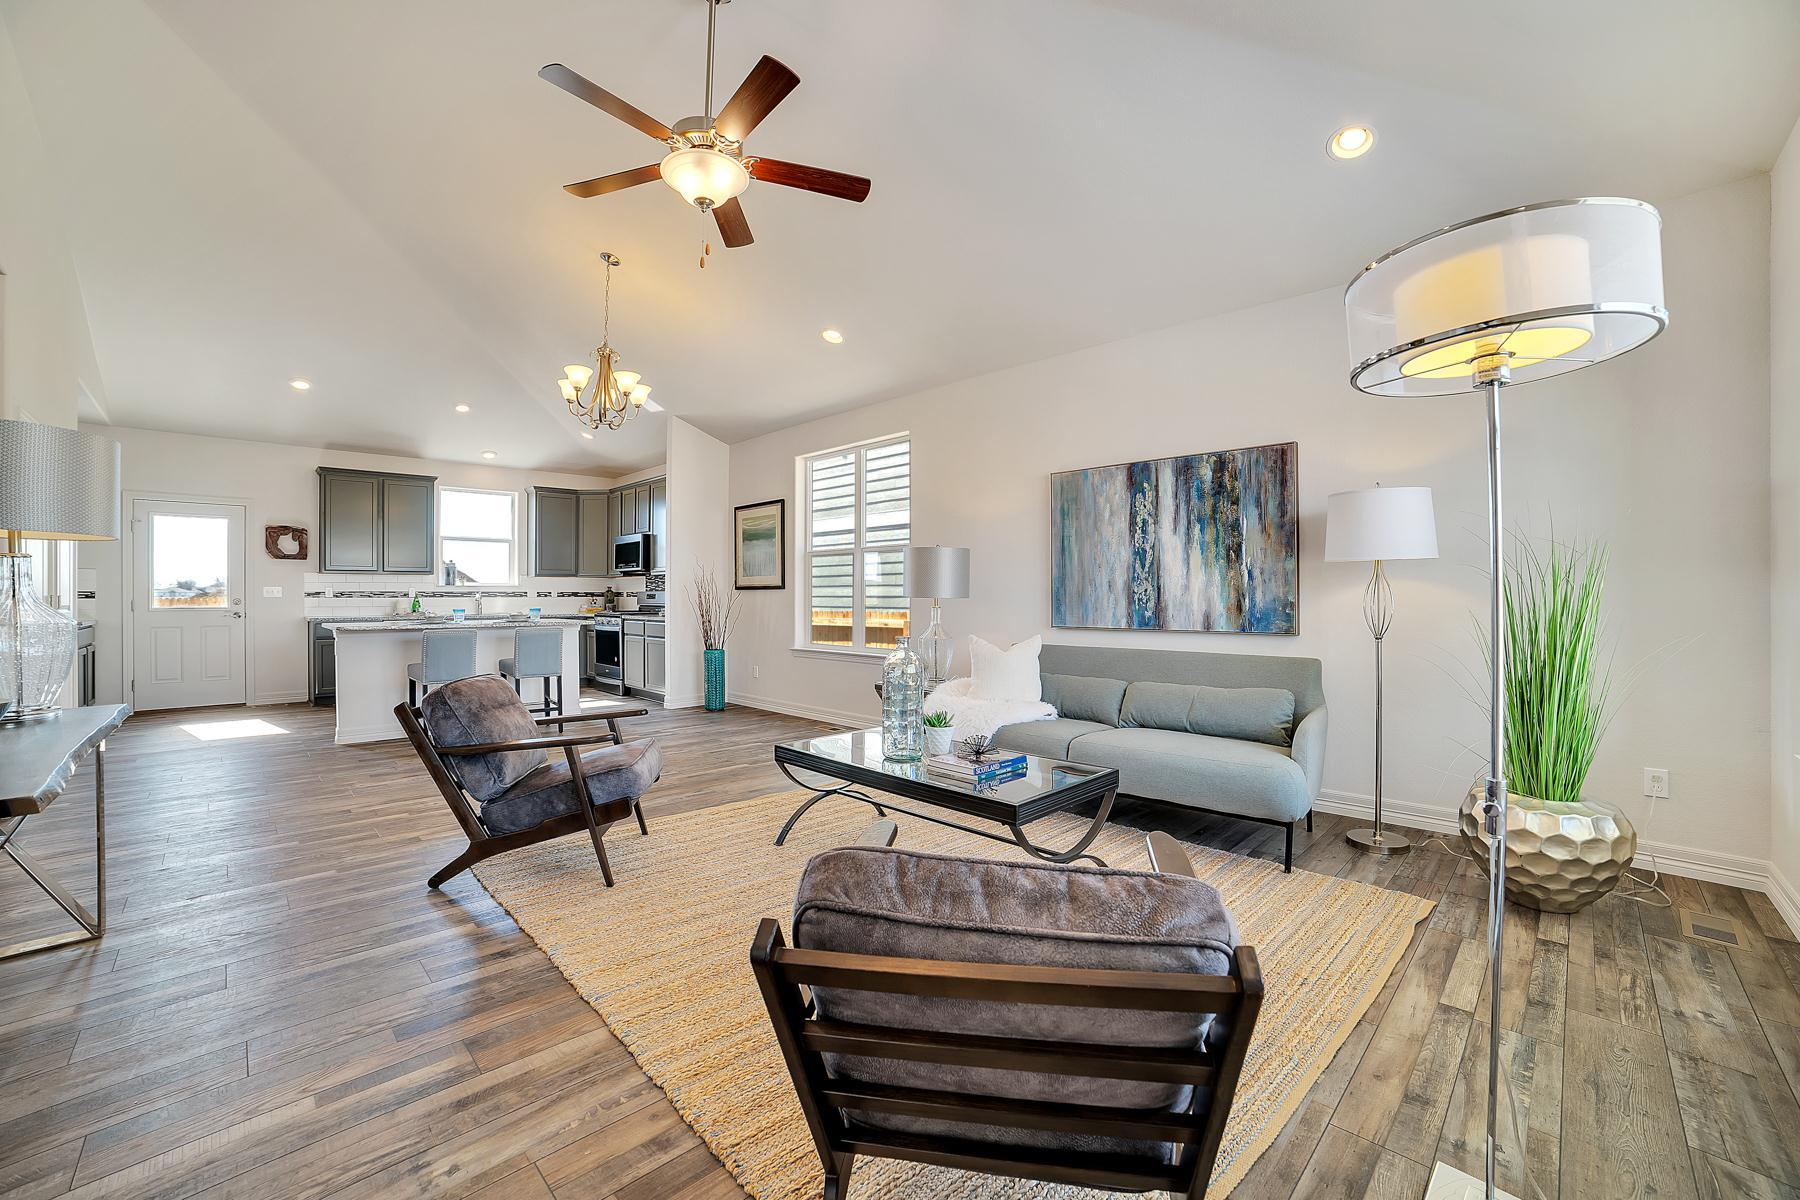 Living Area featured in the Sage at Blackstone Ranch By Pauls Homes in Denver, CO